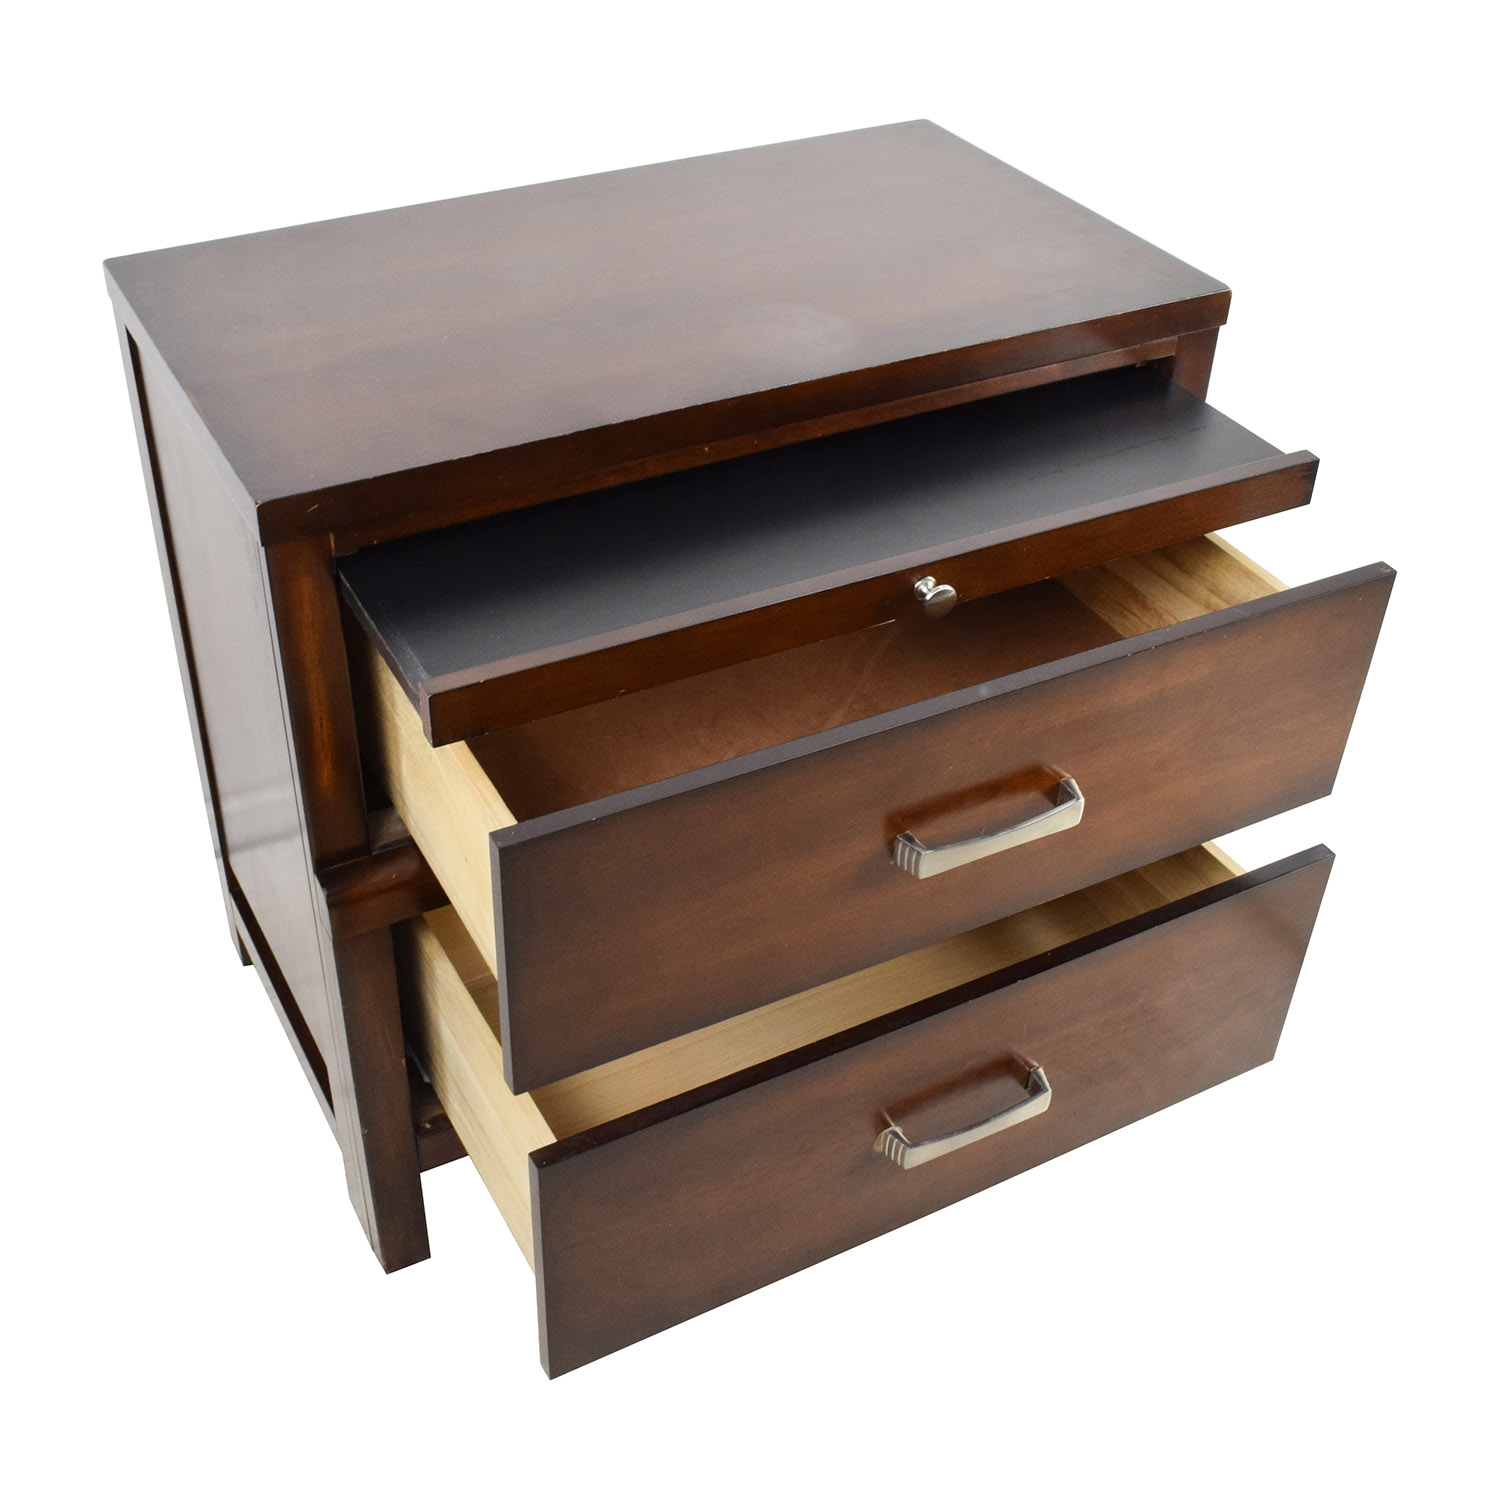 87 Off Wood 2 Drawer Night Stand Tables